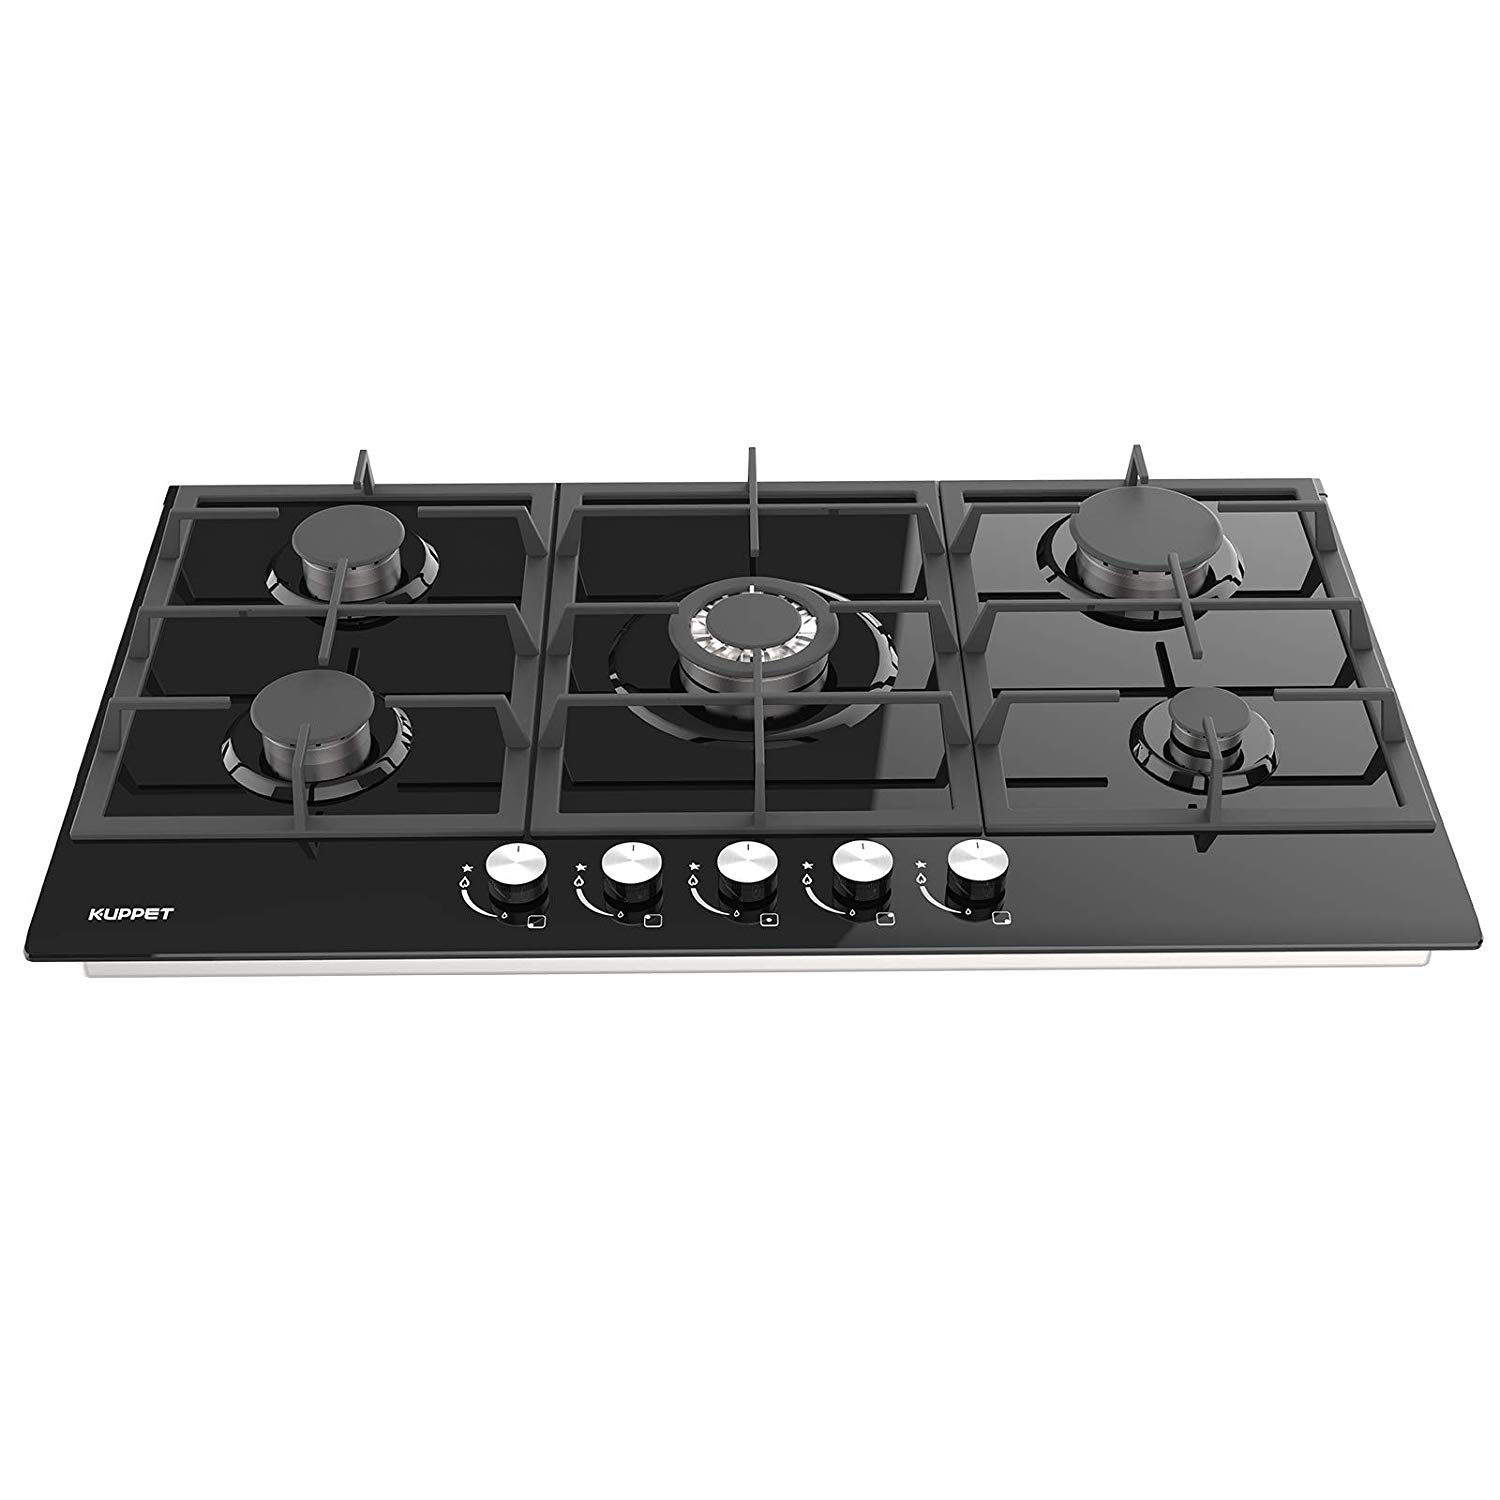 5 Booster 30 Built-in Gas Cooktop KUPPET GHG915 Stove with 5 Booster Burners Smooth Surface Black Tempered Glass Stainless Steel ETL Safety Certified